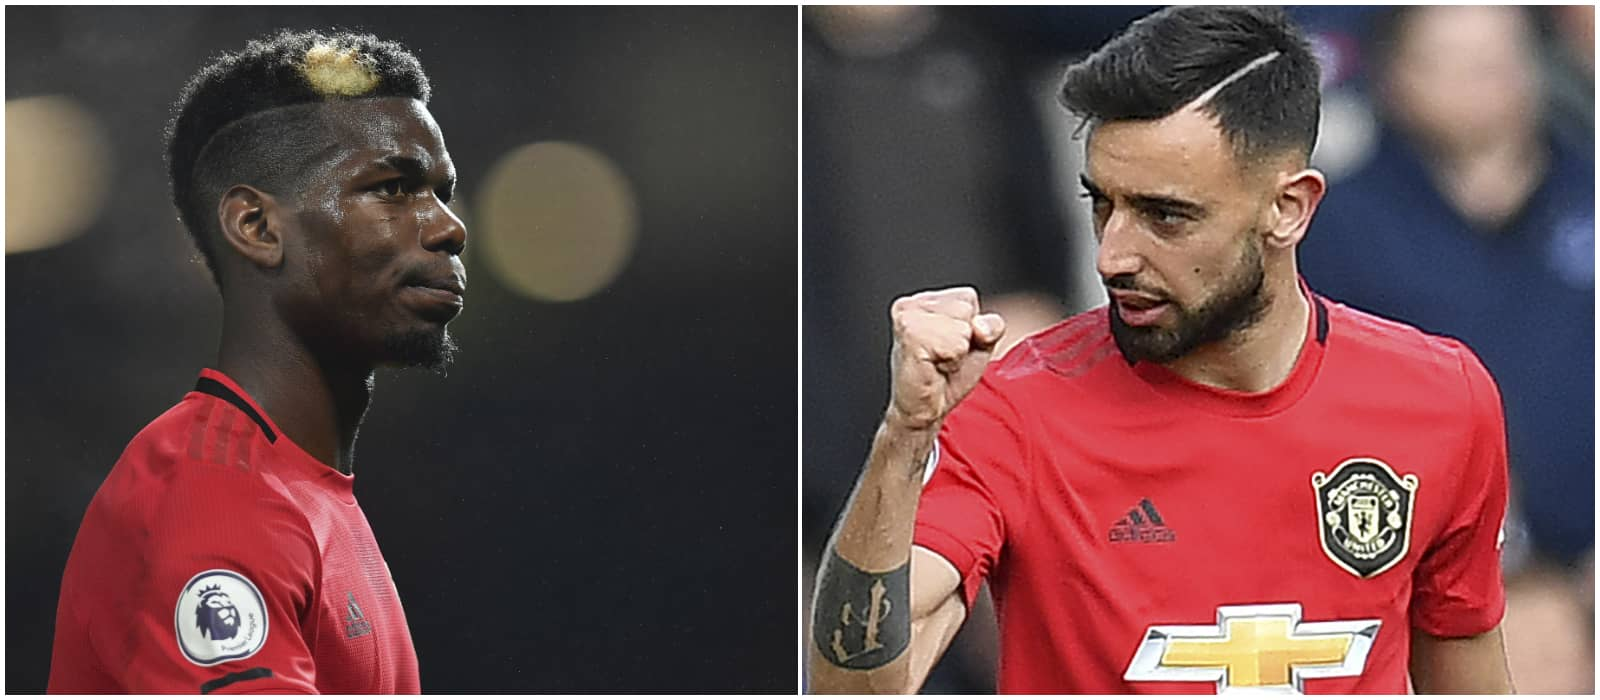 Manchester United's Bruno Fernandes and Paul Pogba put on a show